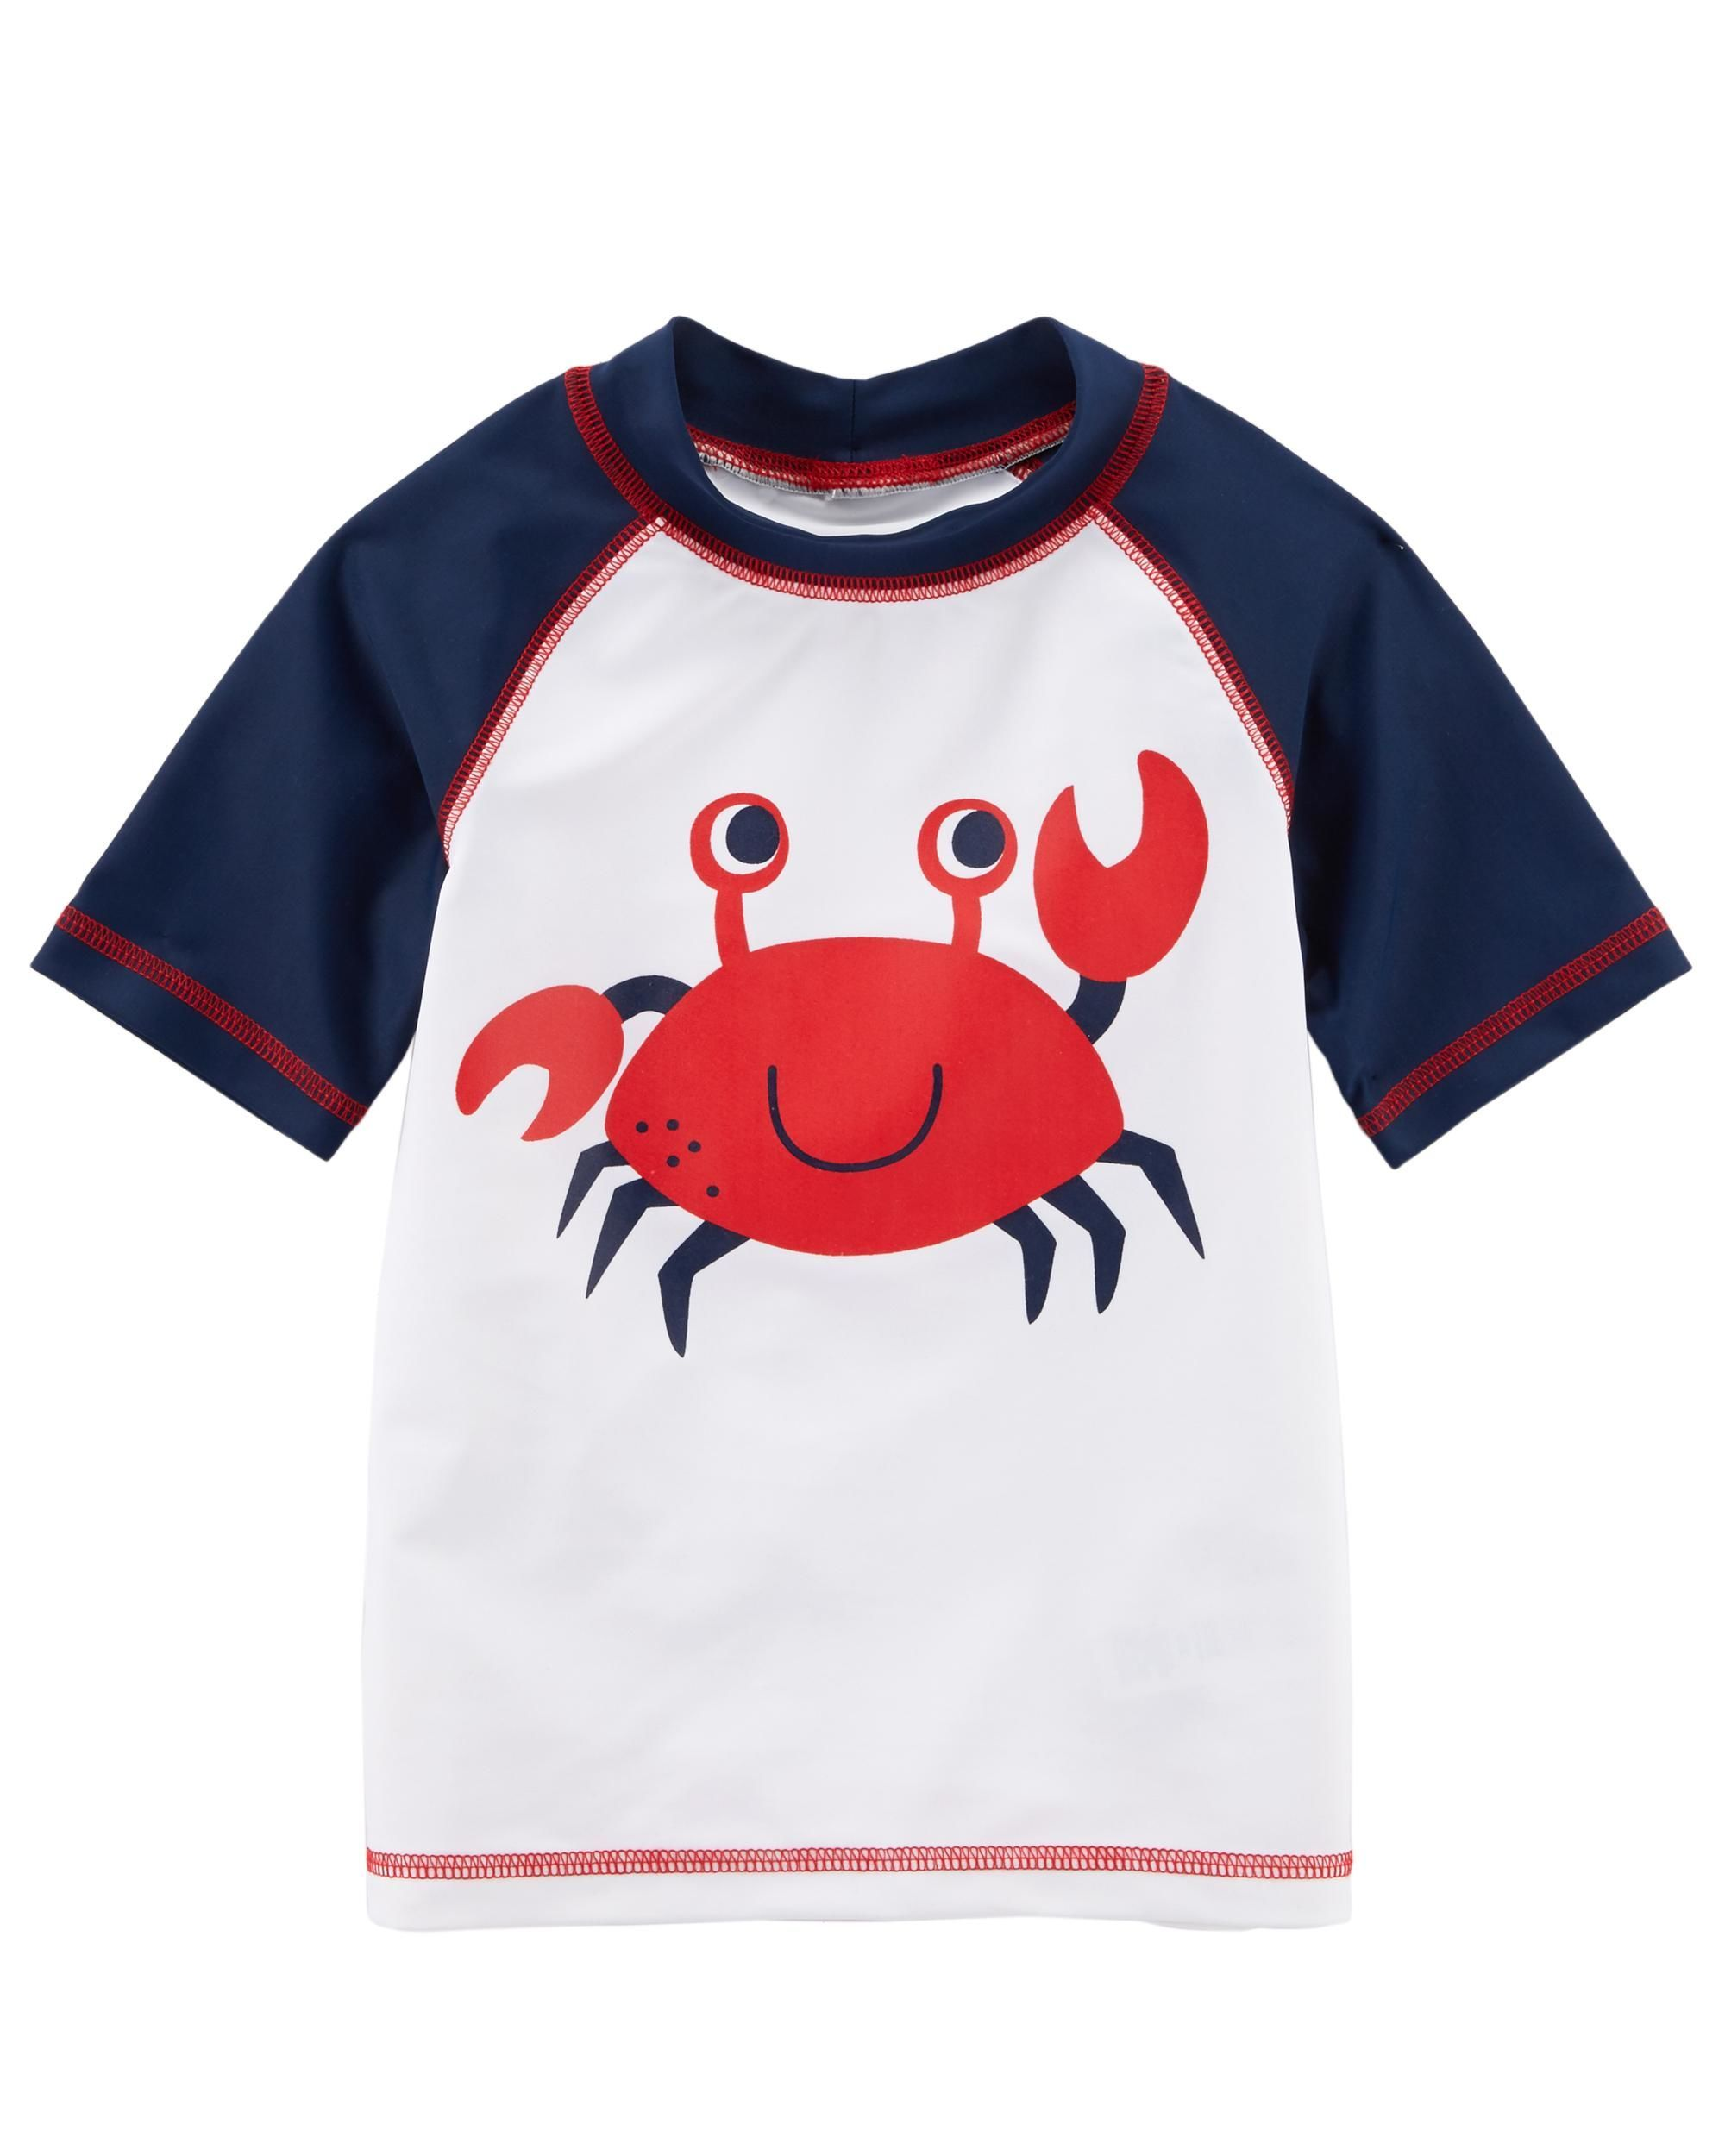 54a8ba368 Designed with raglan sleeves and quick-drying fabric, this crab rashguard  pairs with our striped swim trunks for the perfect beach day!